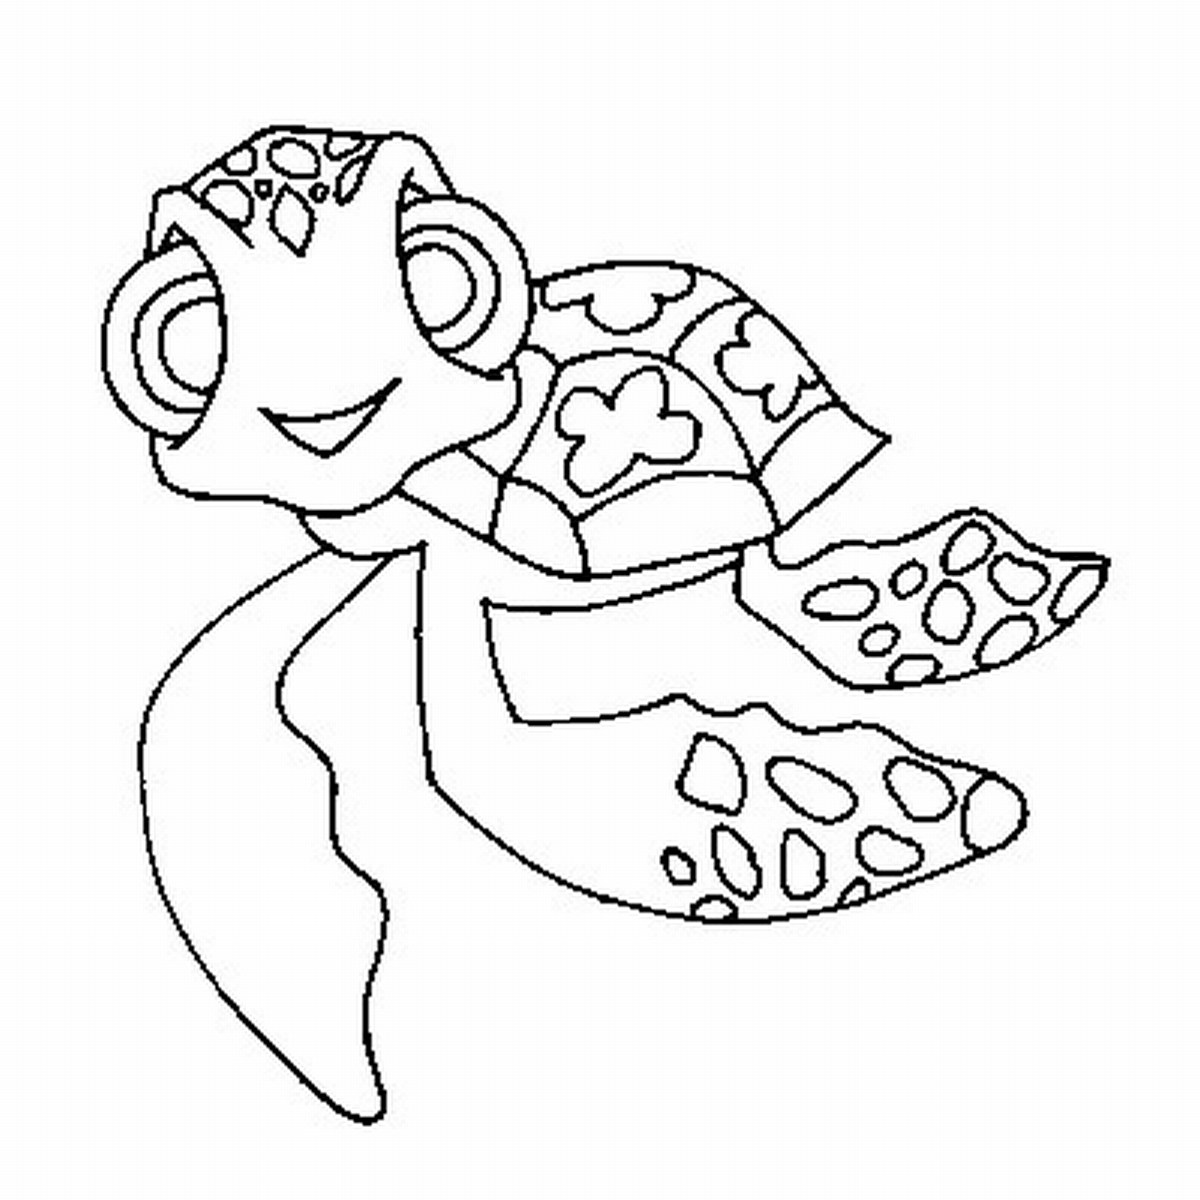 Turtle coloring page only coloring pages for Sea turtles coloring pages